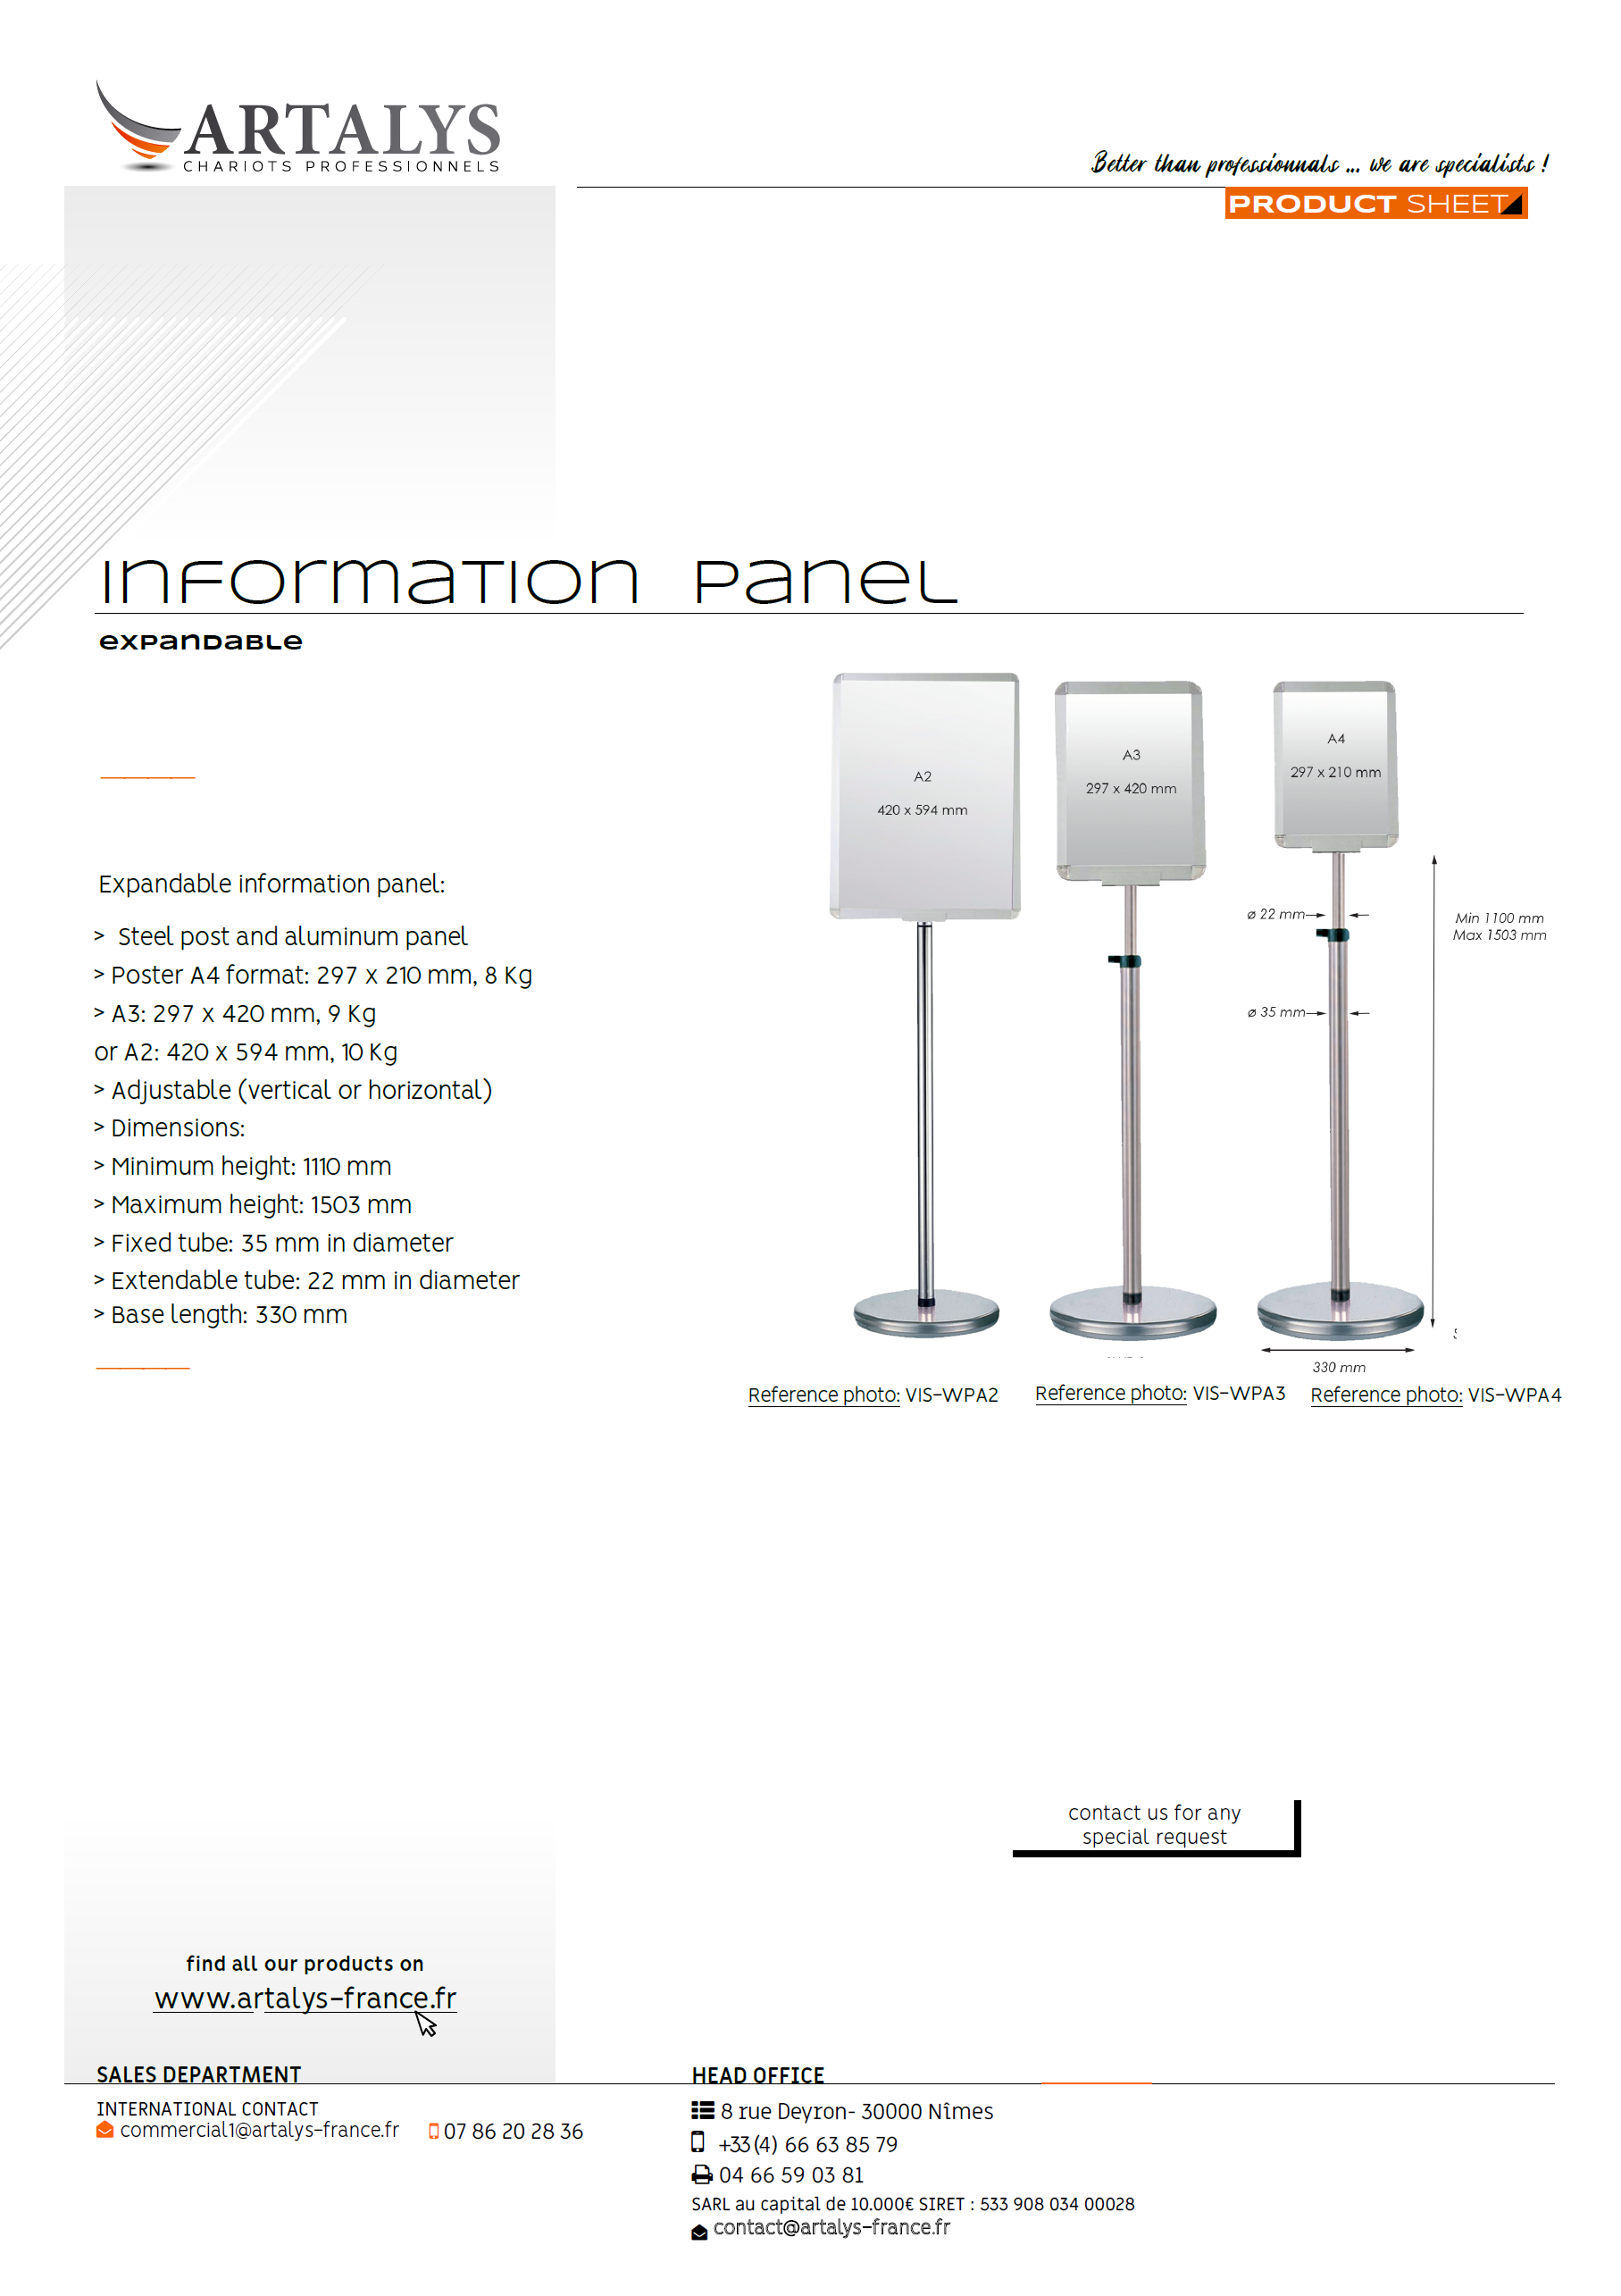 Product sheet of our information panel expandable